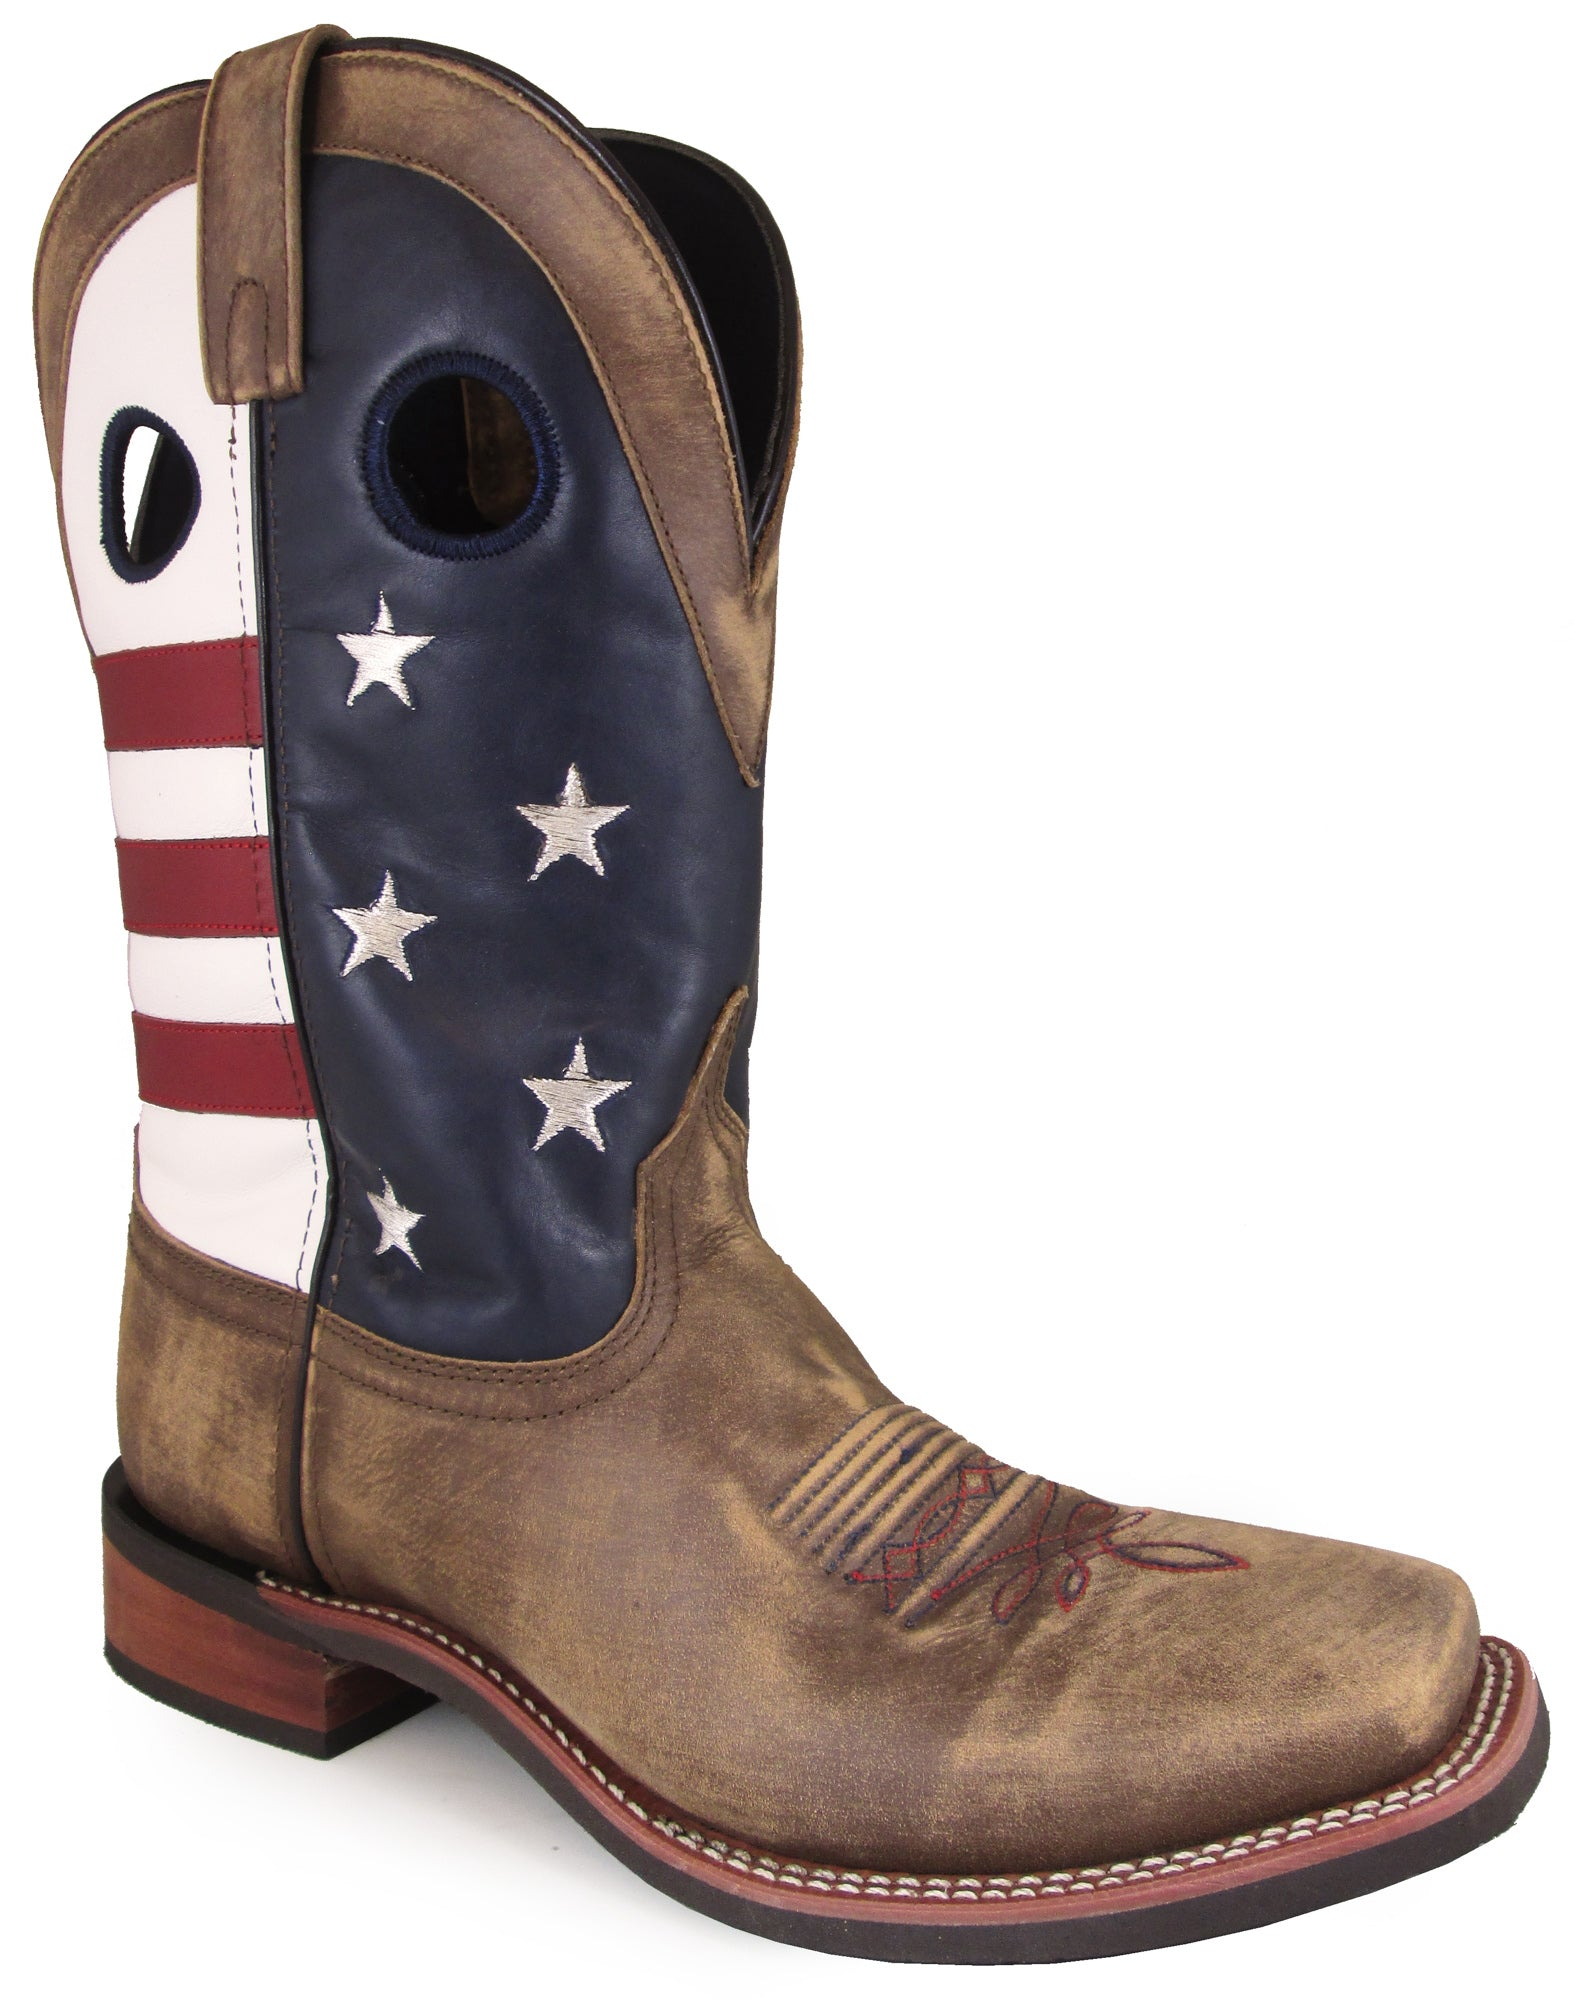 35c48f7a7fd Smoky Mountain Mens Stars And Stripes Vintage Brown Leather Cowboy Boots